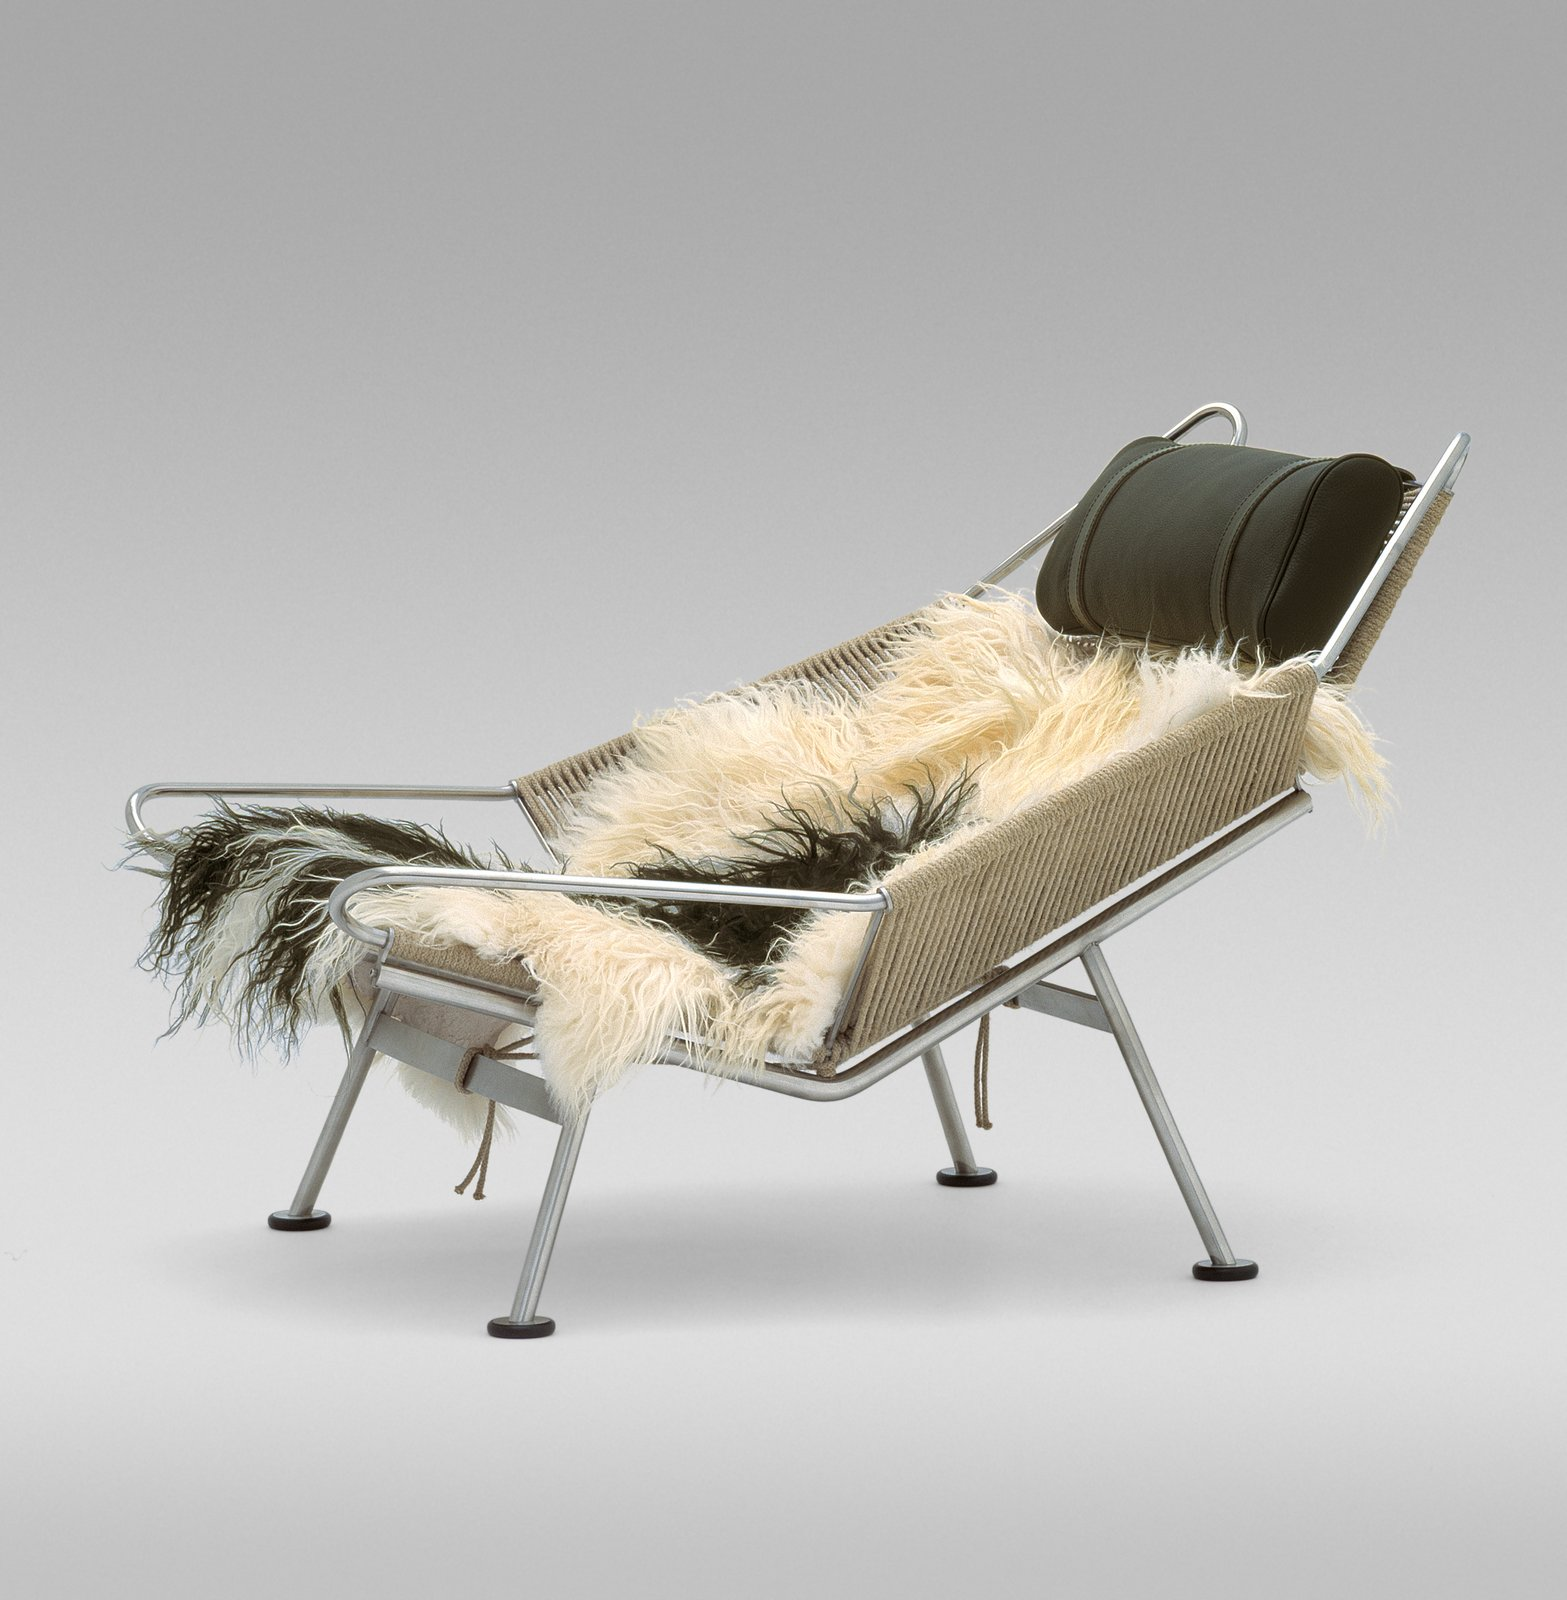 8 Iconic Chairs by Hans Wegner Dwell